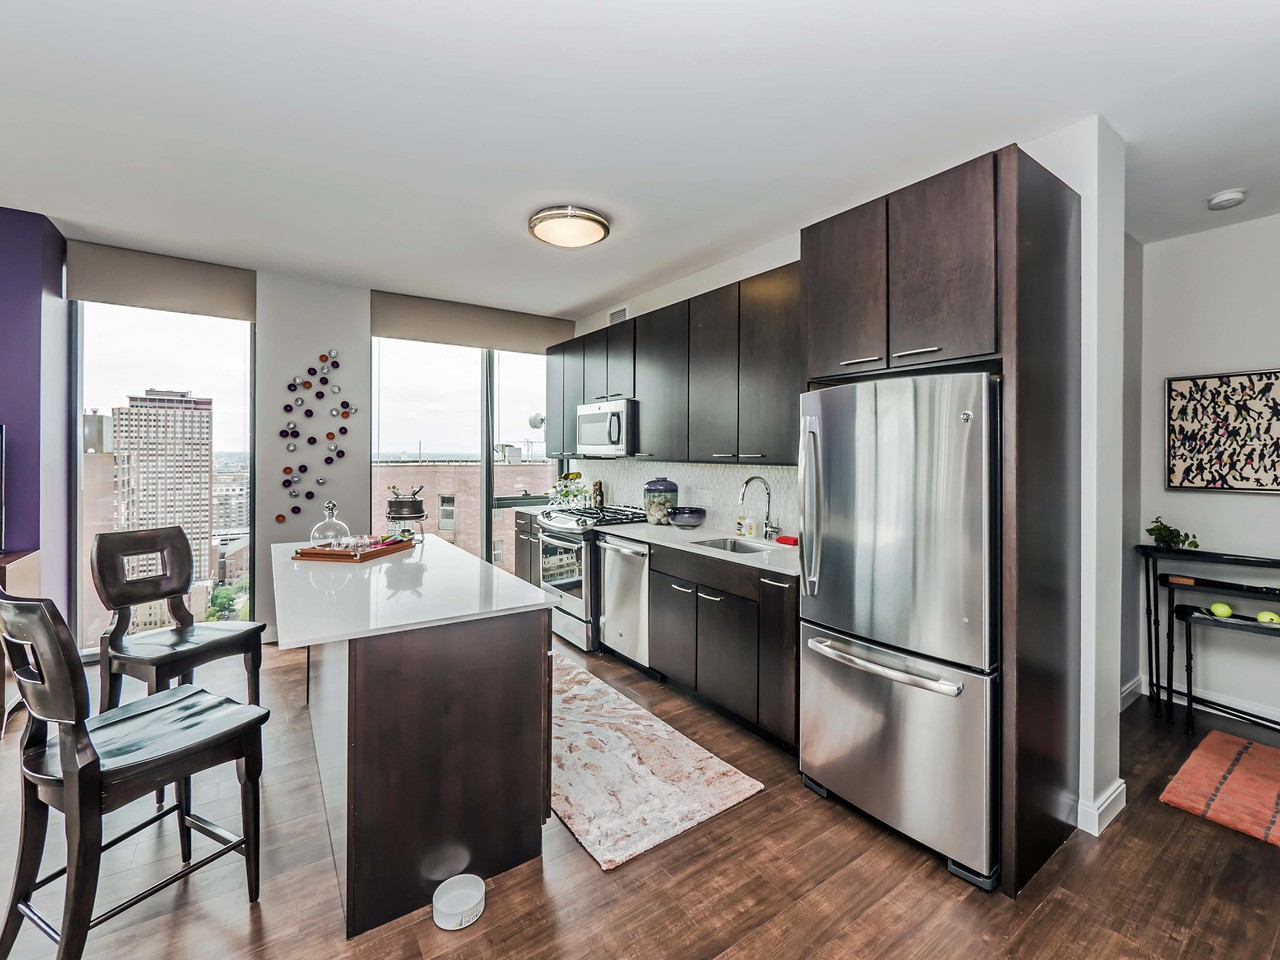 State  Chestnut  845 N State St Chicago IL 60610  Apartment for Rent  PadMapper